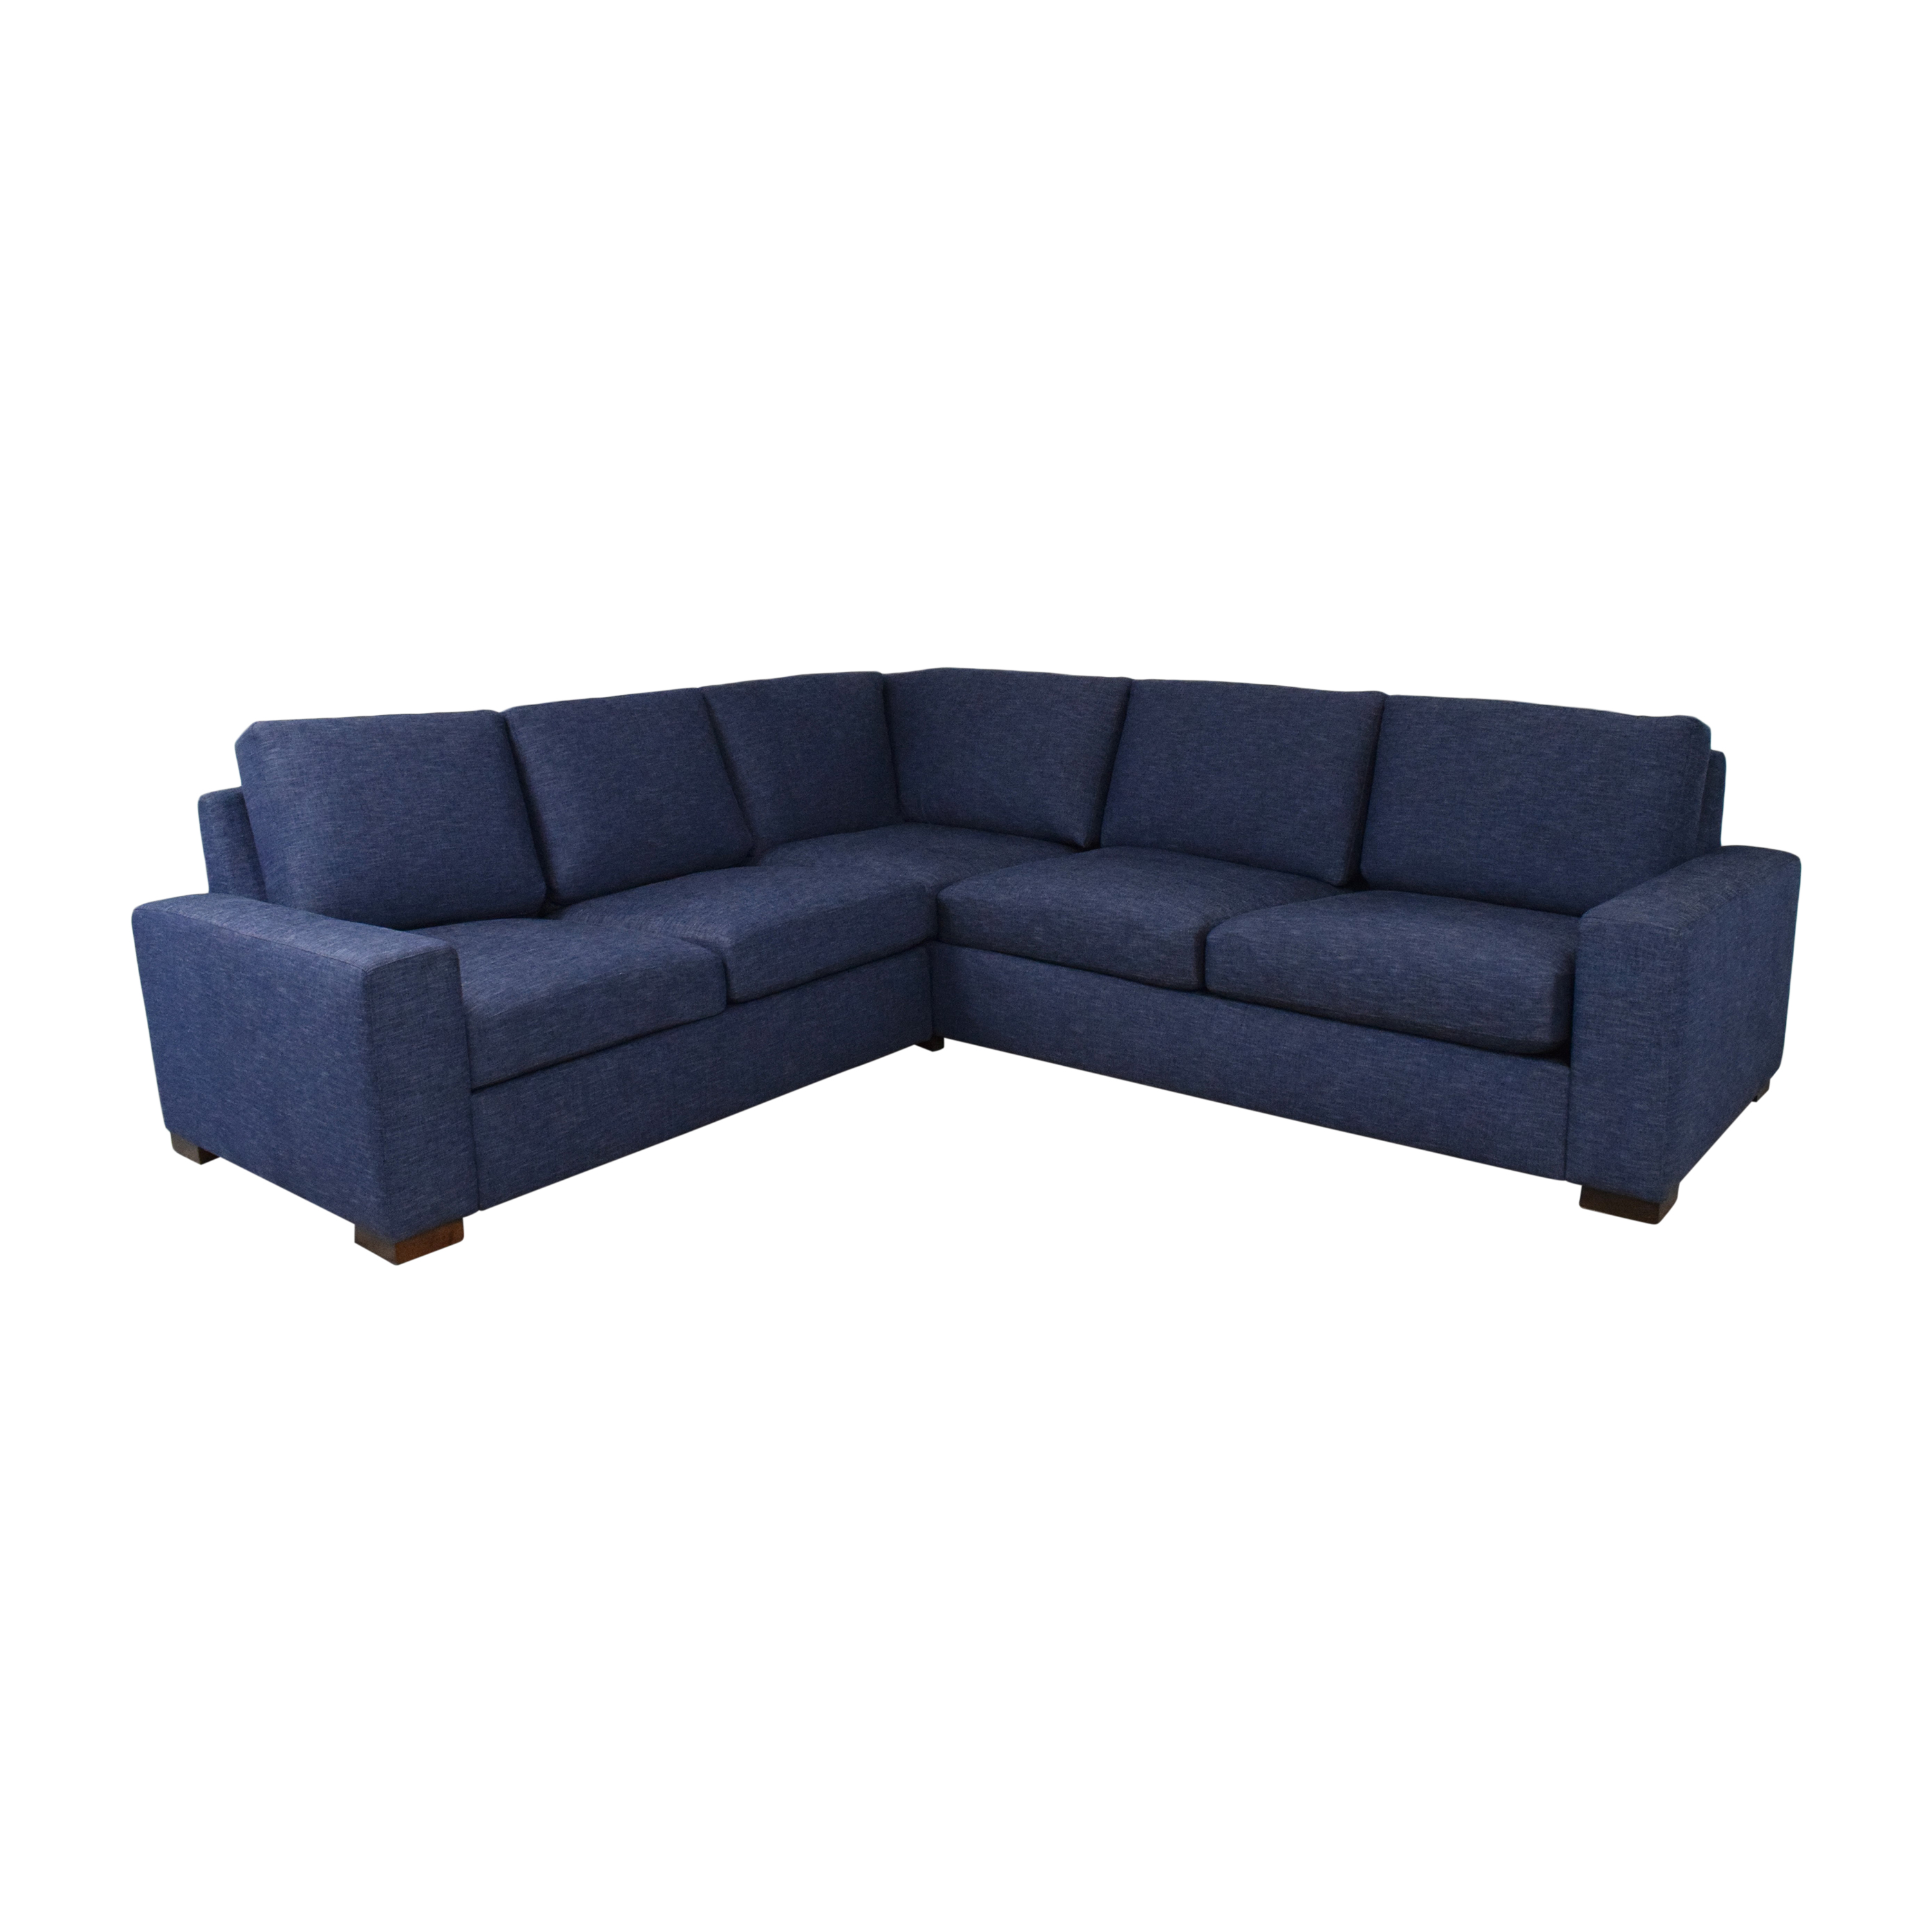 BenchMade Modern BenchMade Modern Couch Potato Sectional Sofa ct